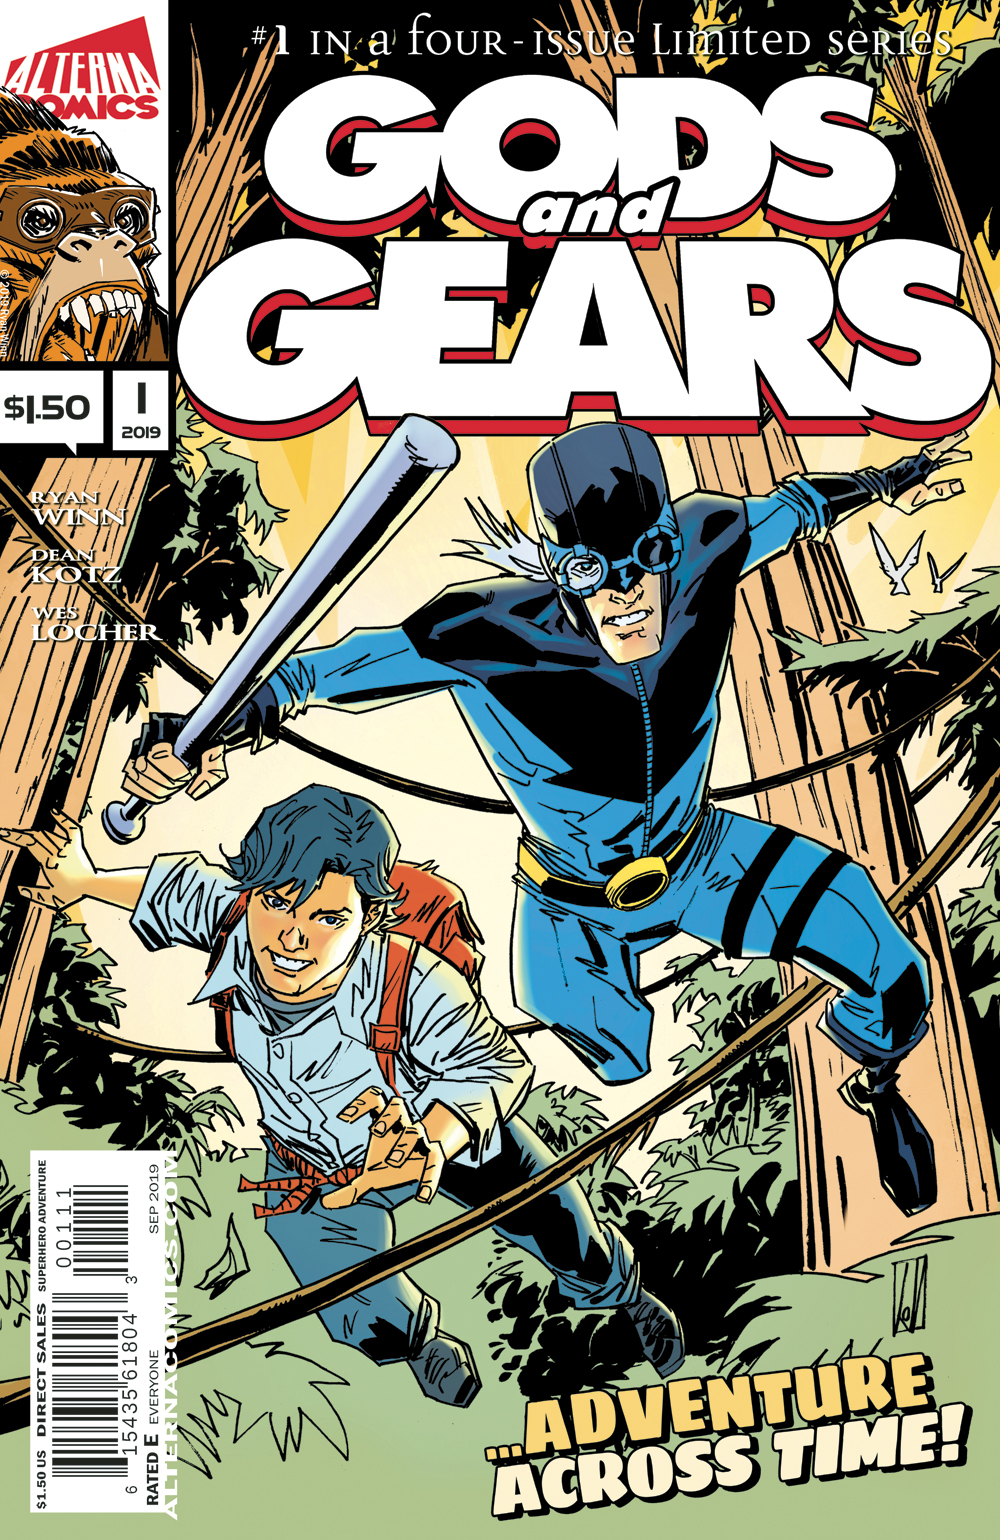 Cover image of indie comic book Gods and Gears published by Alterna Comics